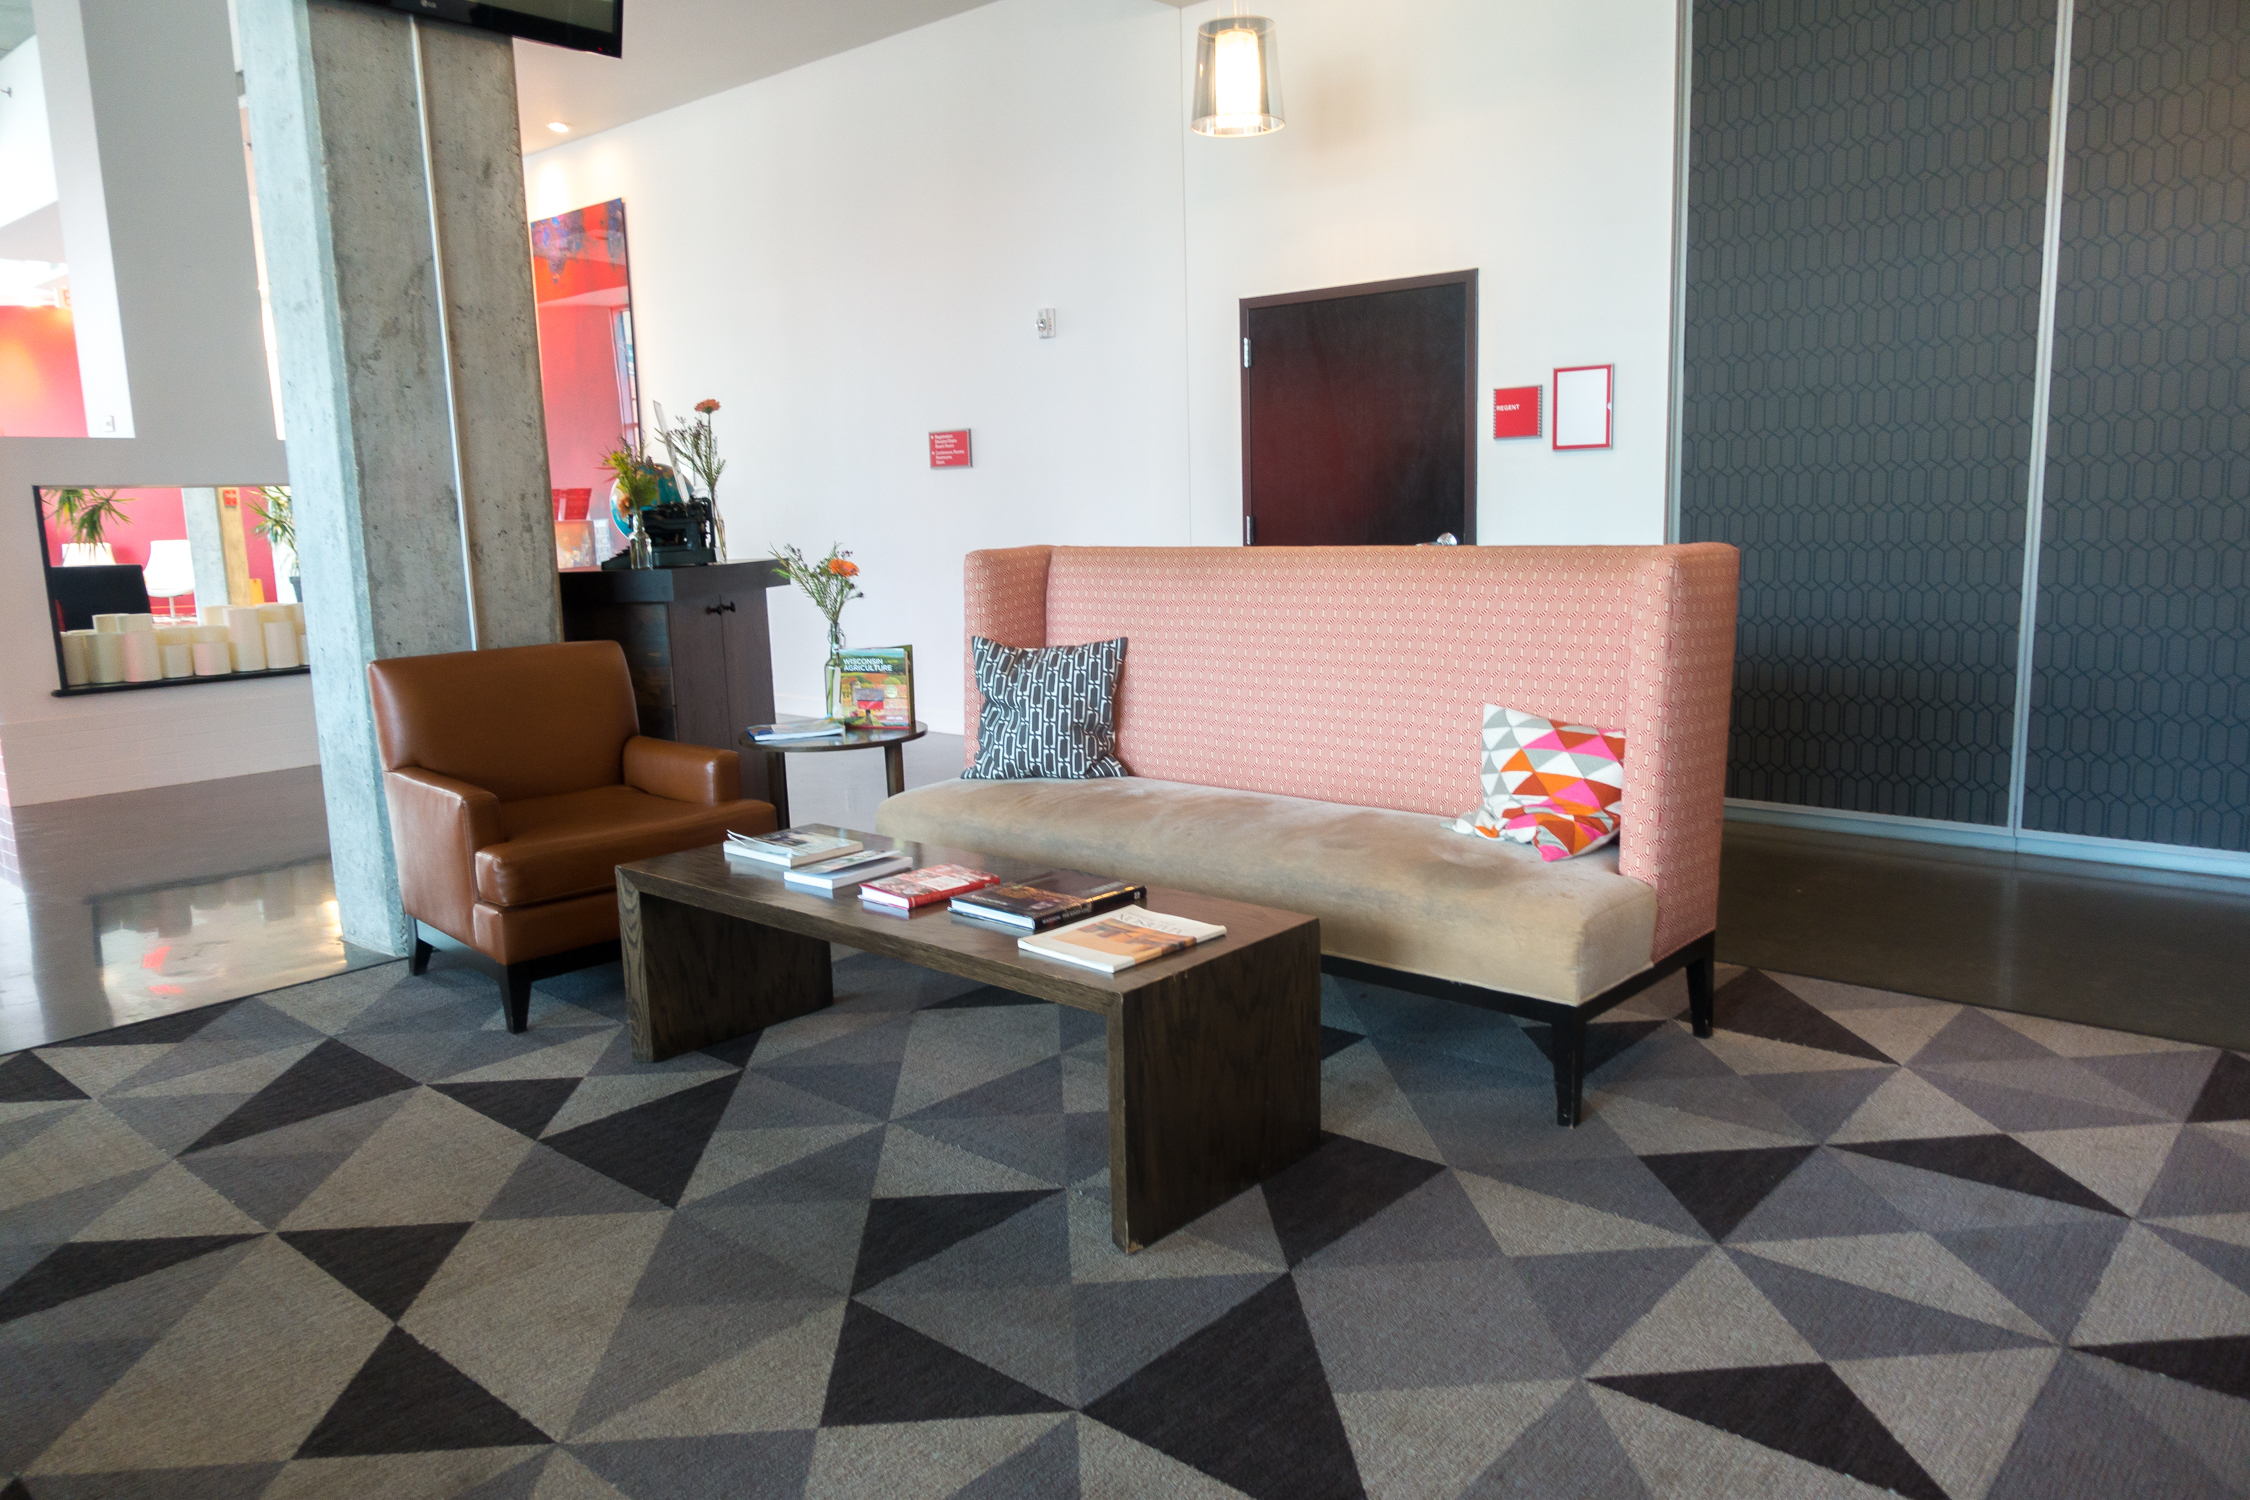 Where to stay in Madison, WI. #wisconsin #travel #midwest #hotel